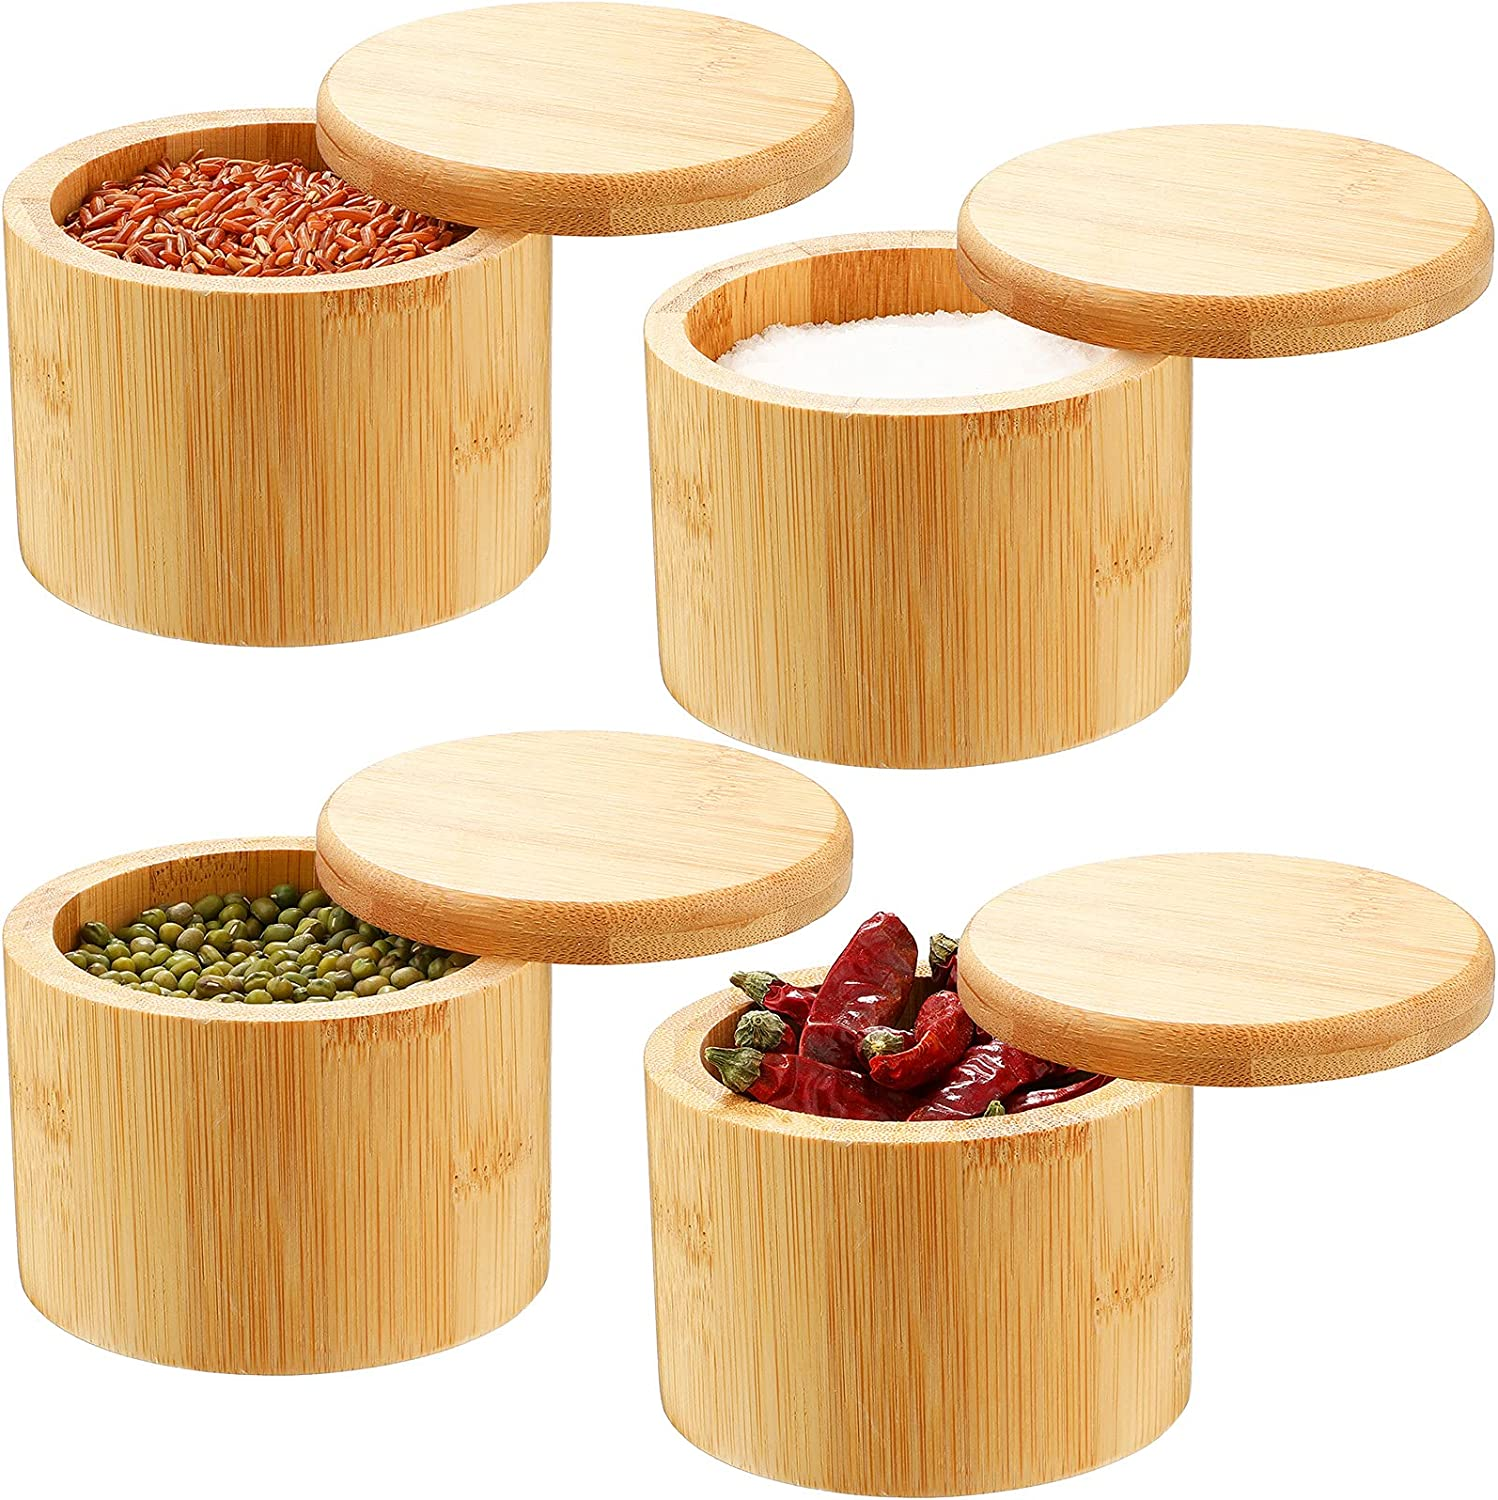 4 At the price of surprise Pieces Bamboo Salt Storage with and Challenge the lowest price of Japan ☆ Swivel Magnetic S Lid